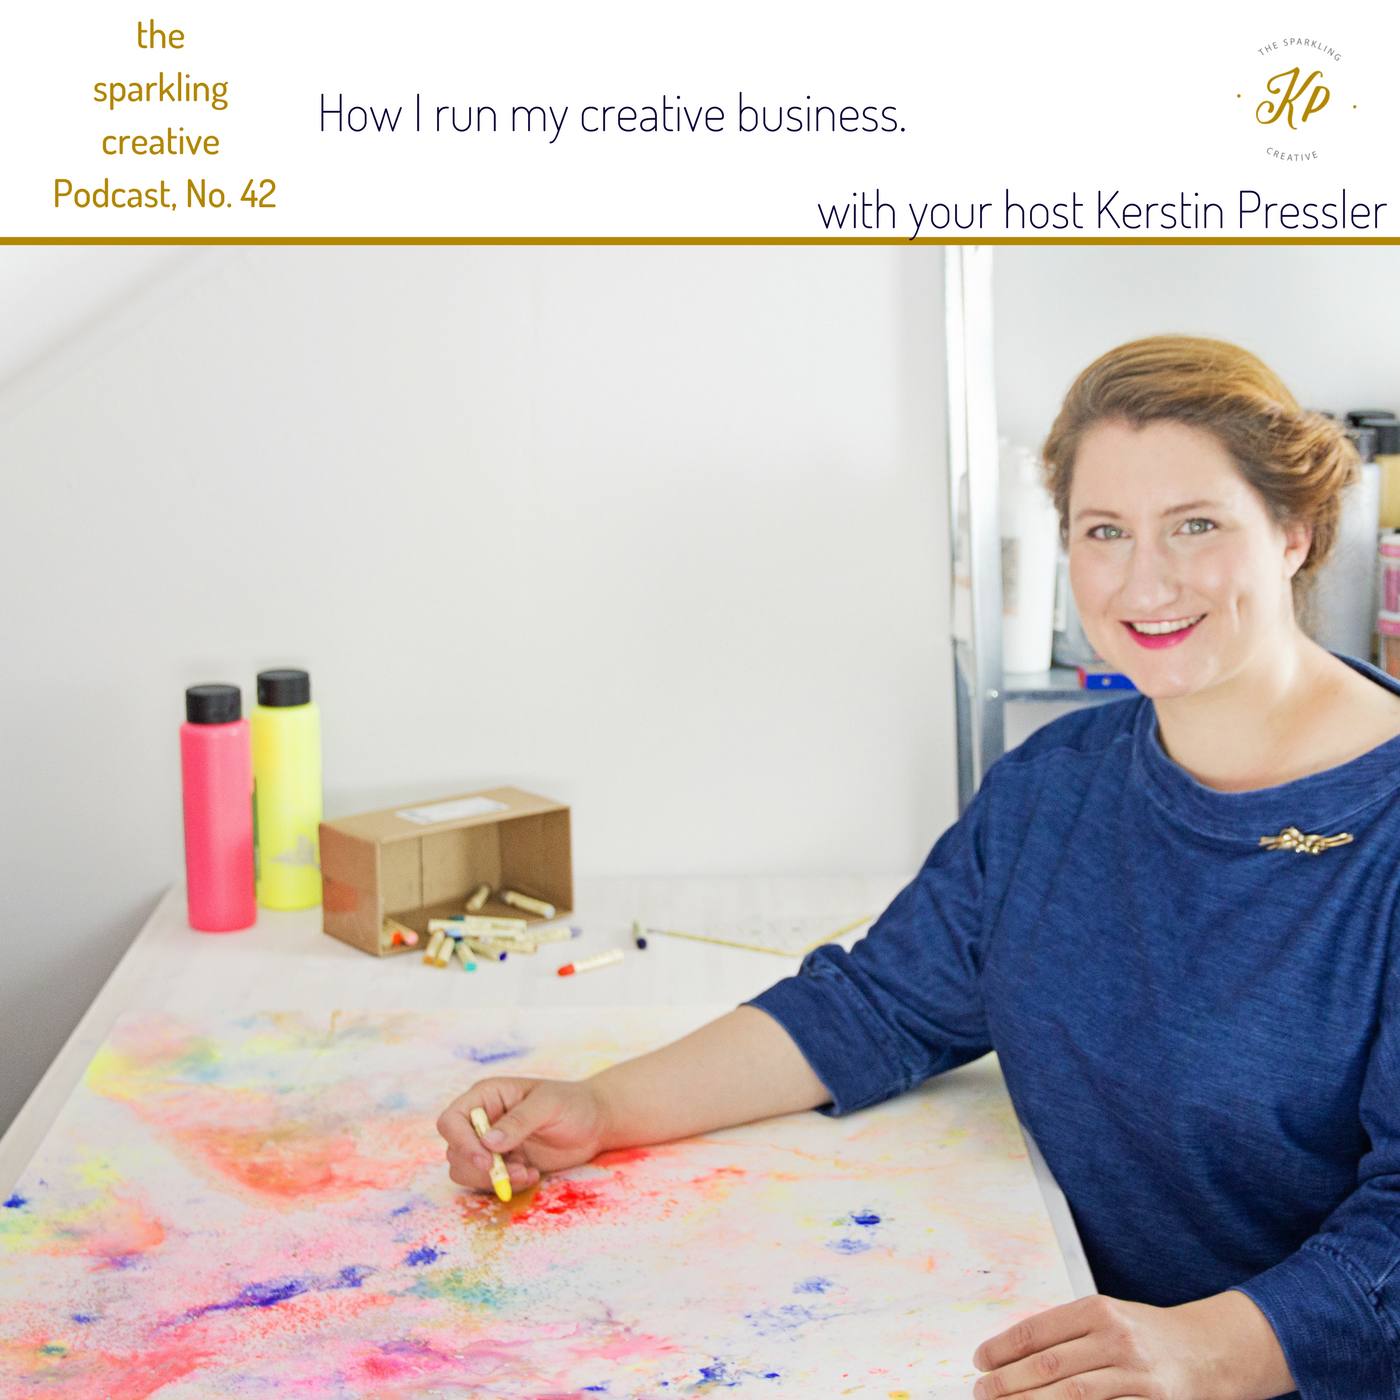 Artwork for Episode 42: How I run my creative business